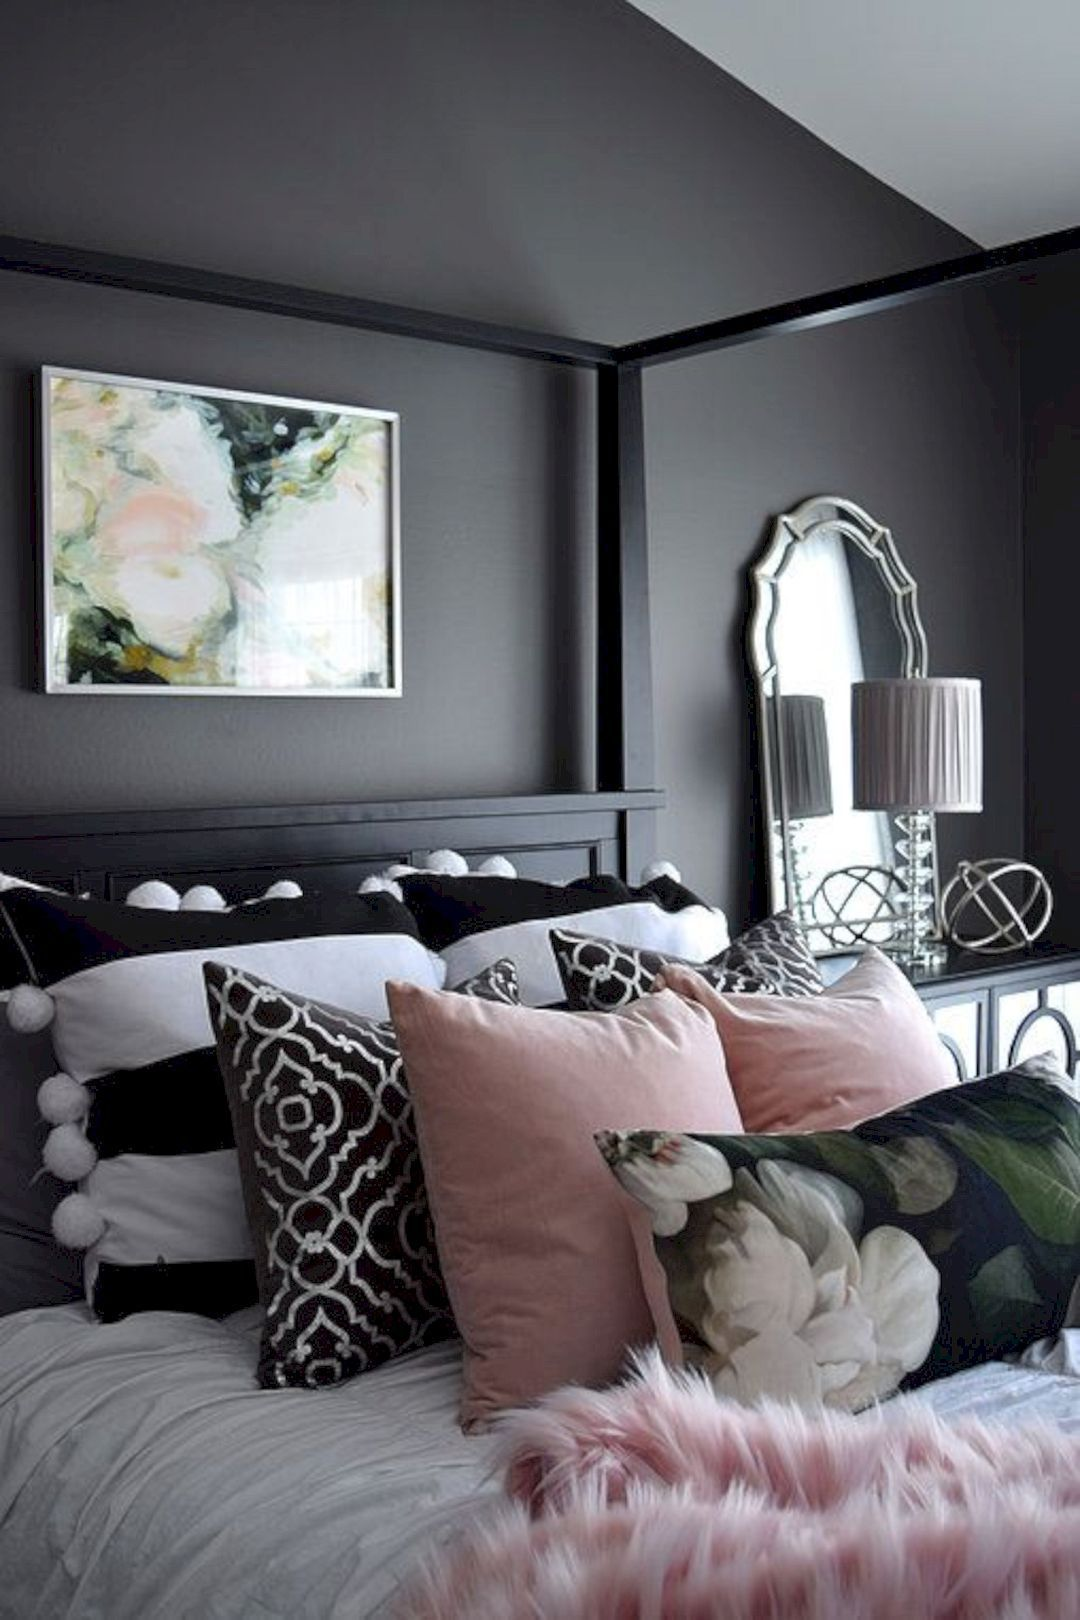 16 Awesome Black Furniture Bedroom Ideas https://www ... on small house bedroom design, brick wall bedroom design, nursing home bedroom design, living room bedroom design, townhouse bedroom design, hotel bedroom design, interior design, hunting lodge bedroom design, luxury bedroom design, custom bedroom design, condominium bedroom design, mobile home bedroom design, office bedroom design,